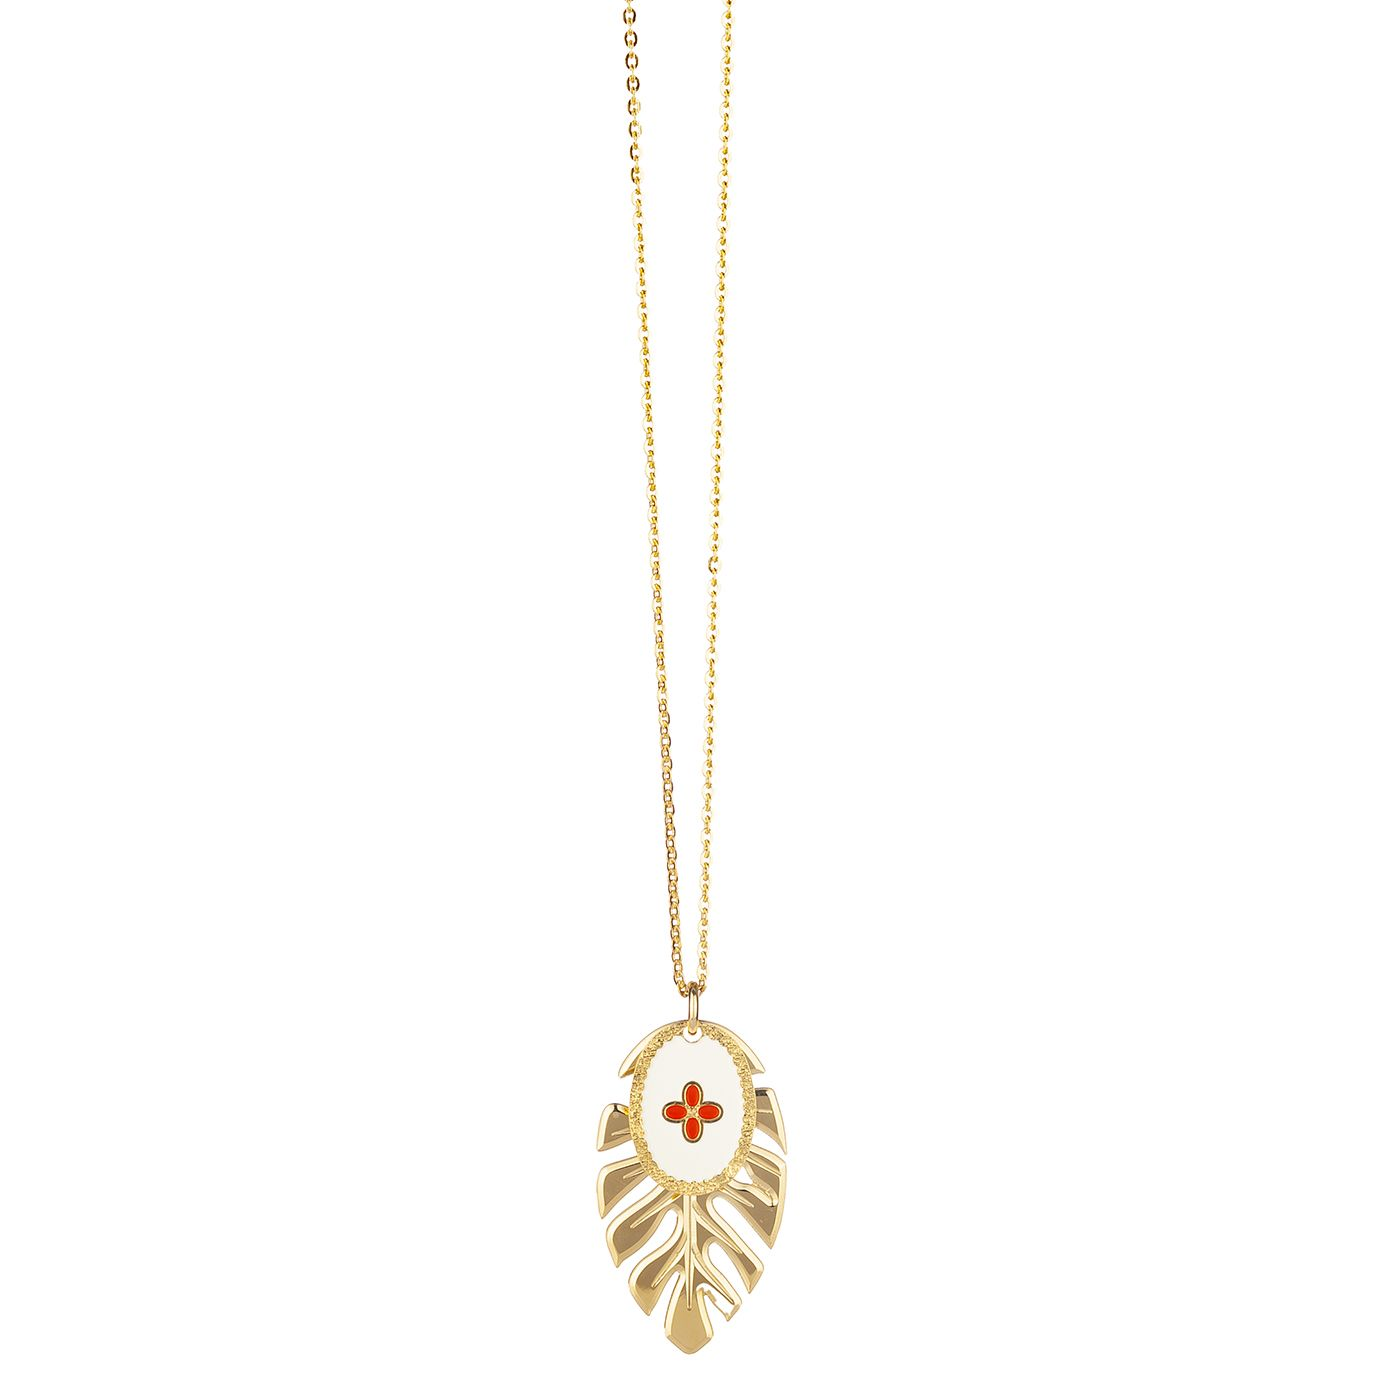 "Halskette ""Collier feuille or le coeur"""